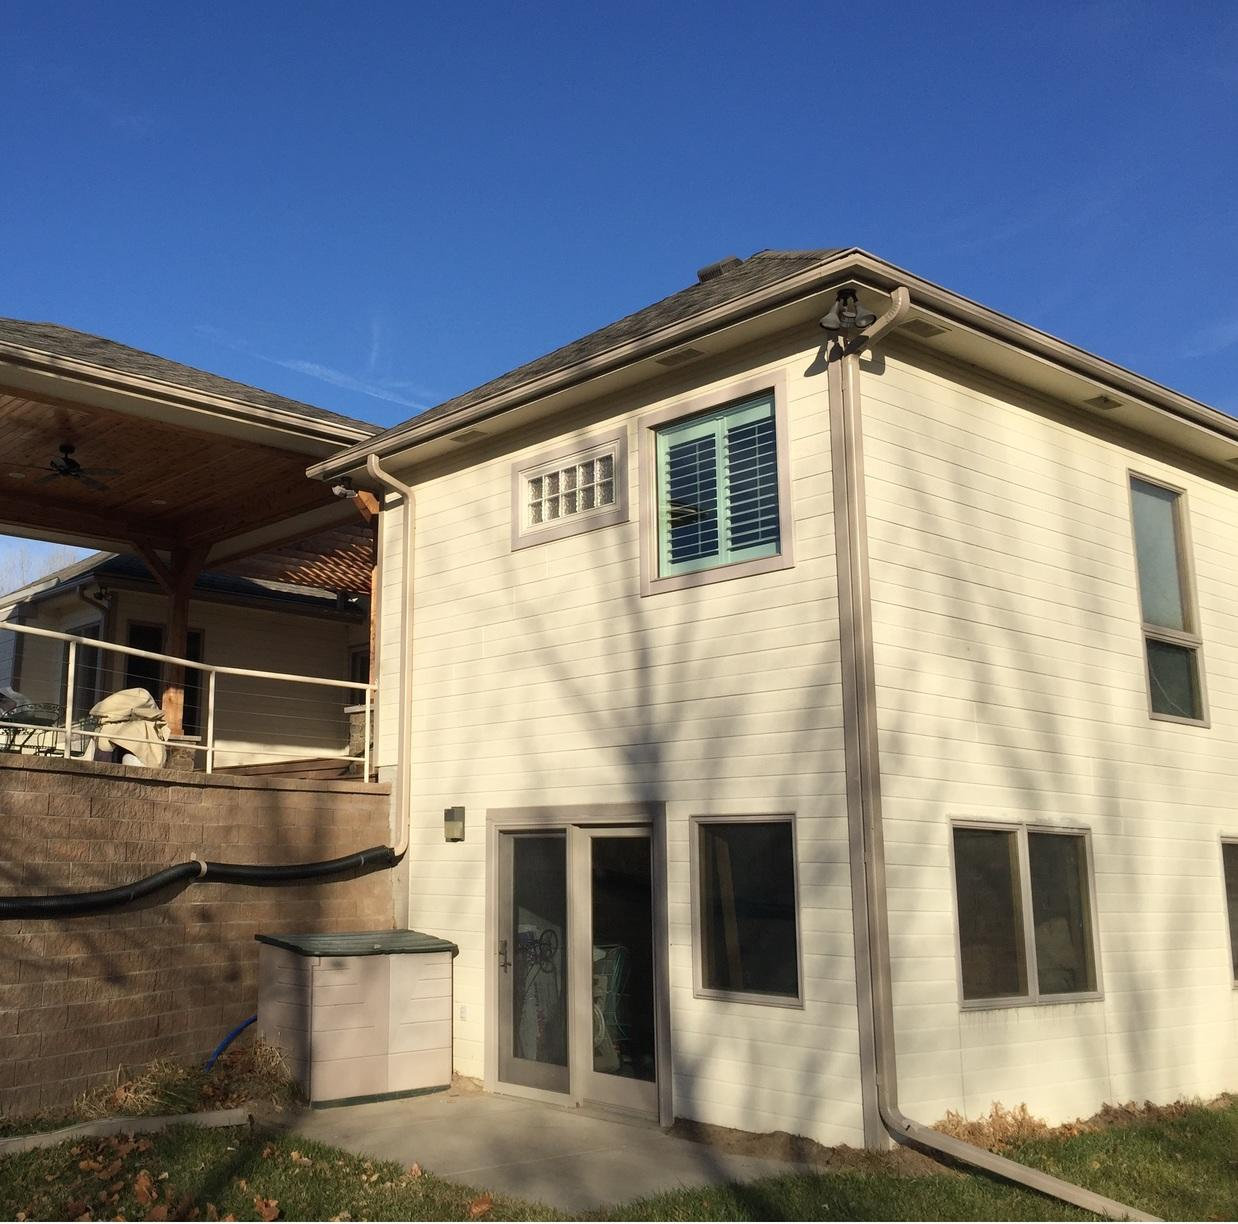 Rain Gutter Installation in Council Bluffs, IA - After Photo